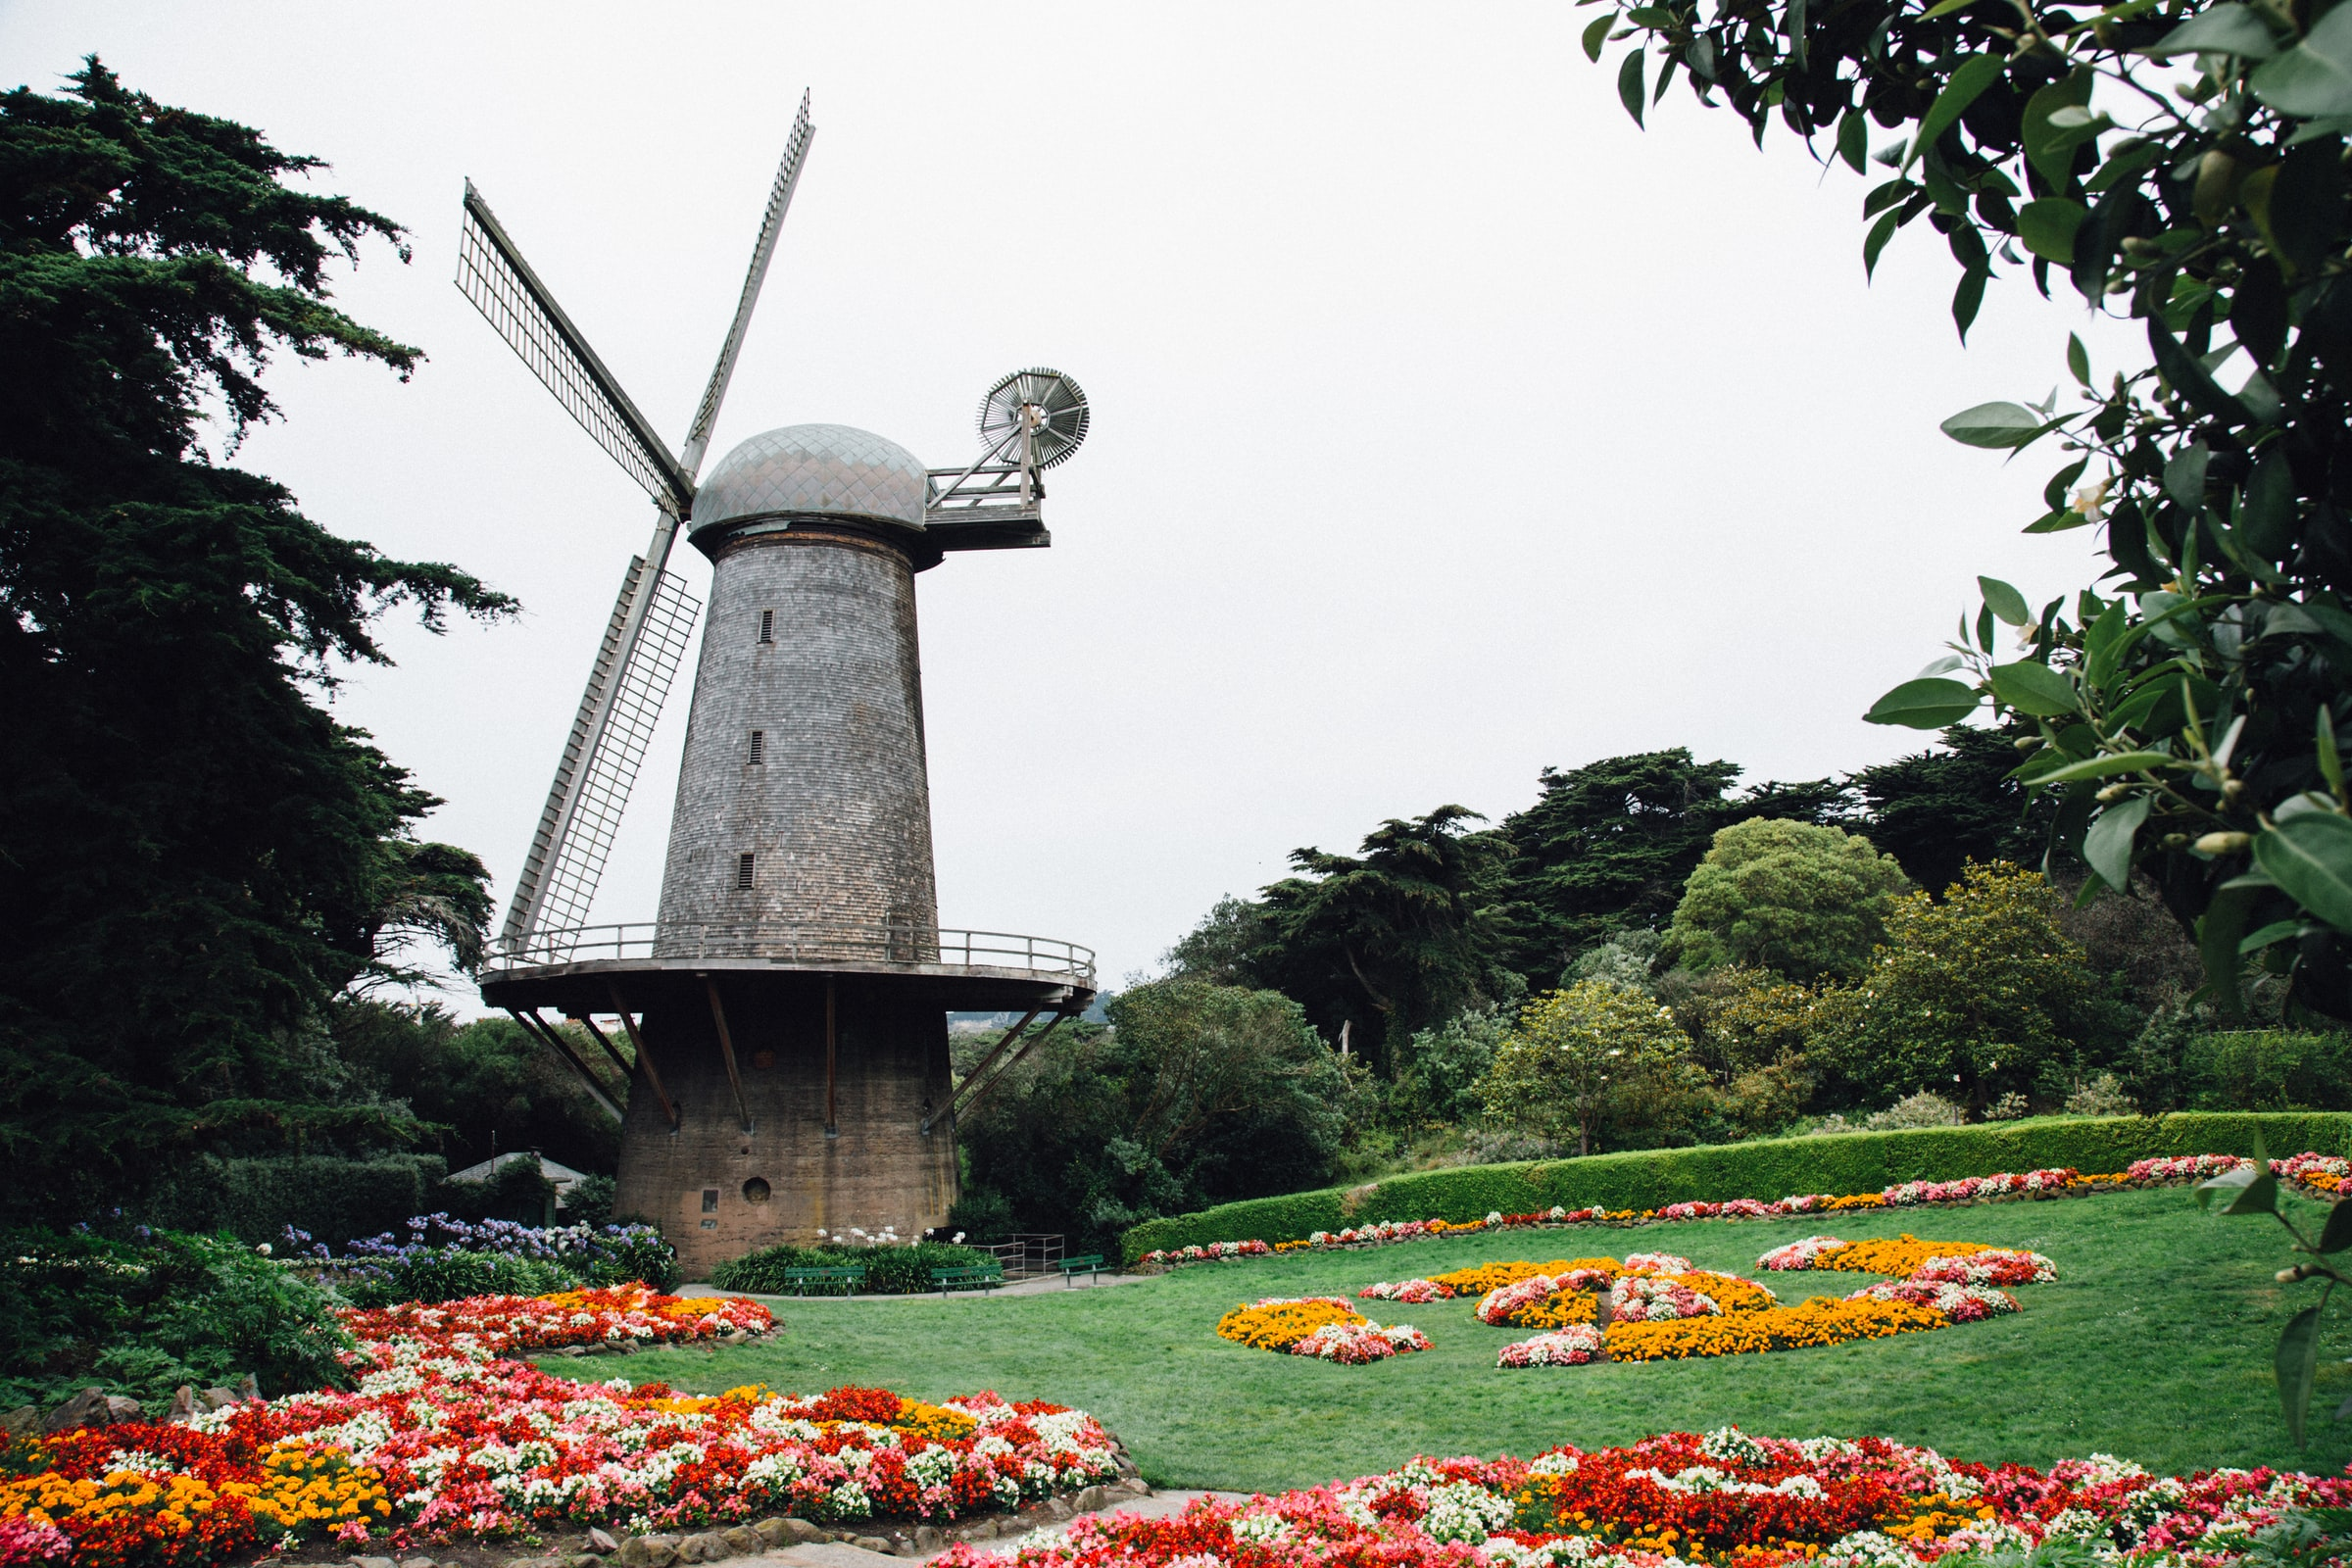 The Dutch Windmill above a tulip garden at the far end of Golden Gate Park